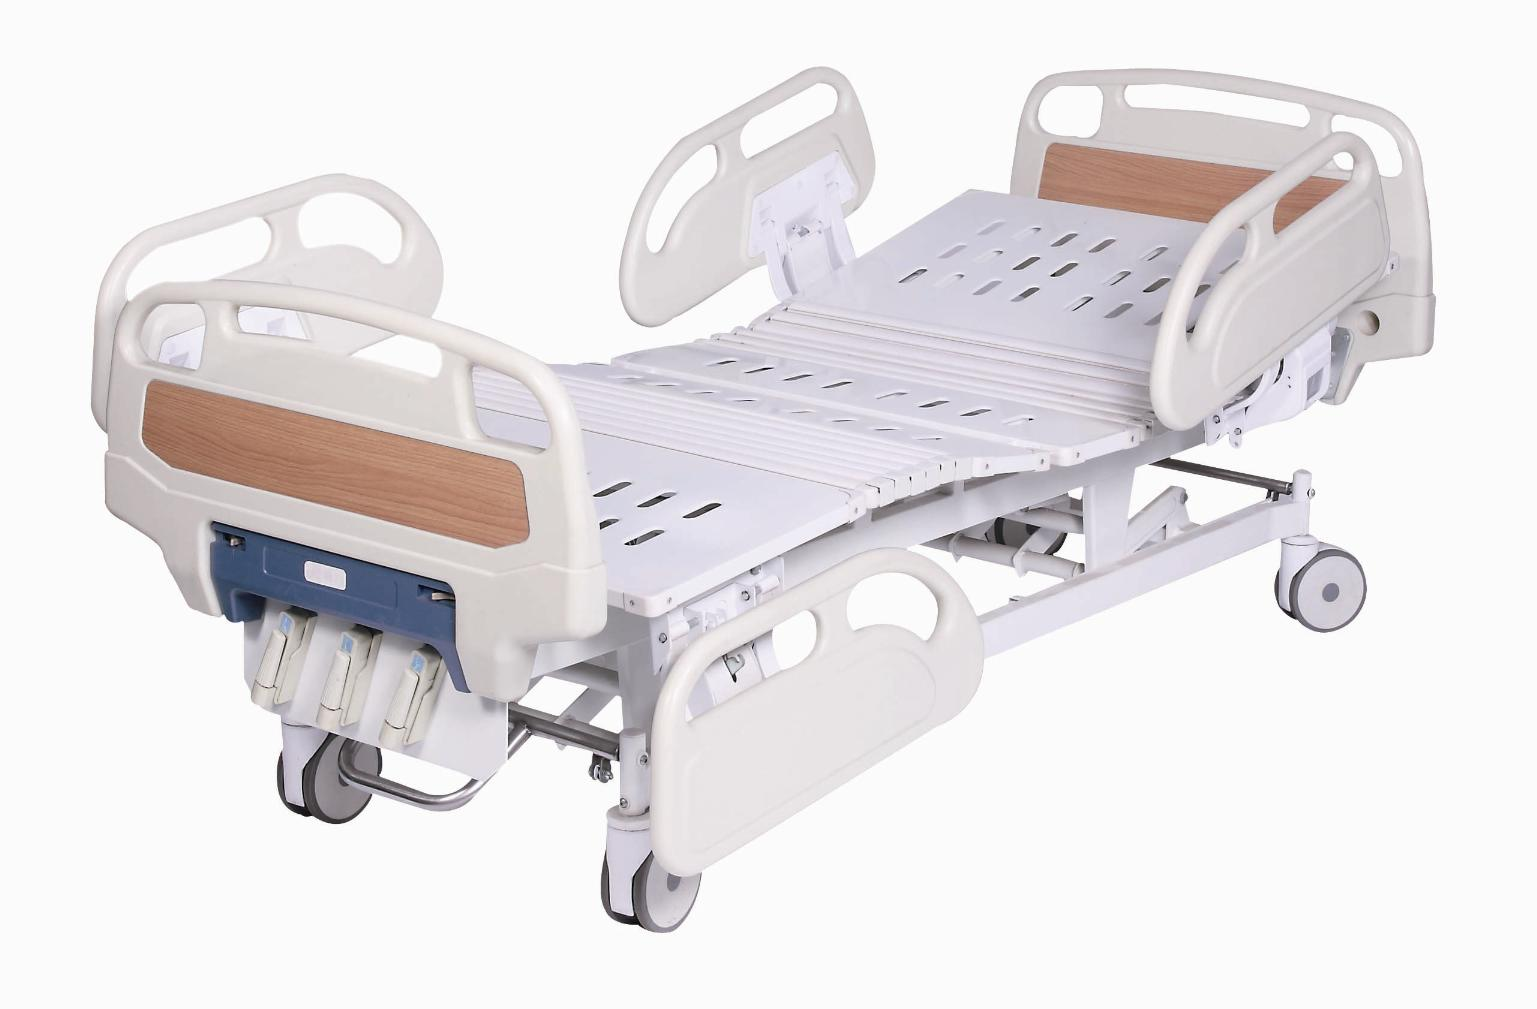 beds medical home pharmacy s bed and rentals equipment istock burt supplies hospital